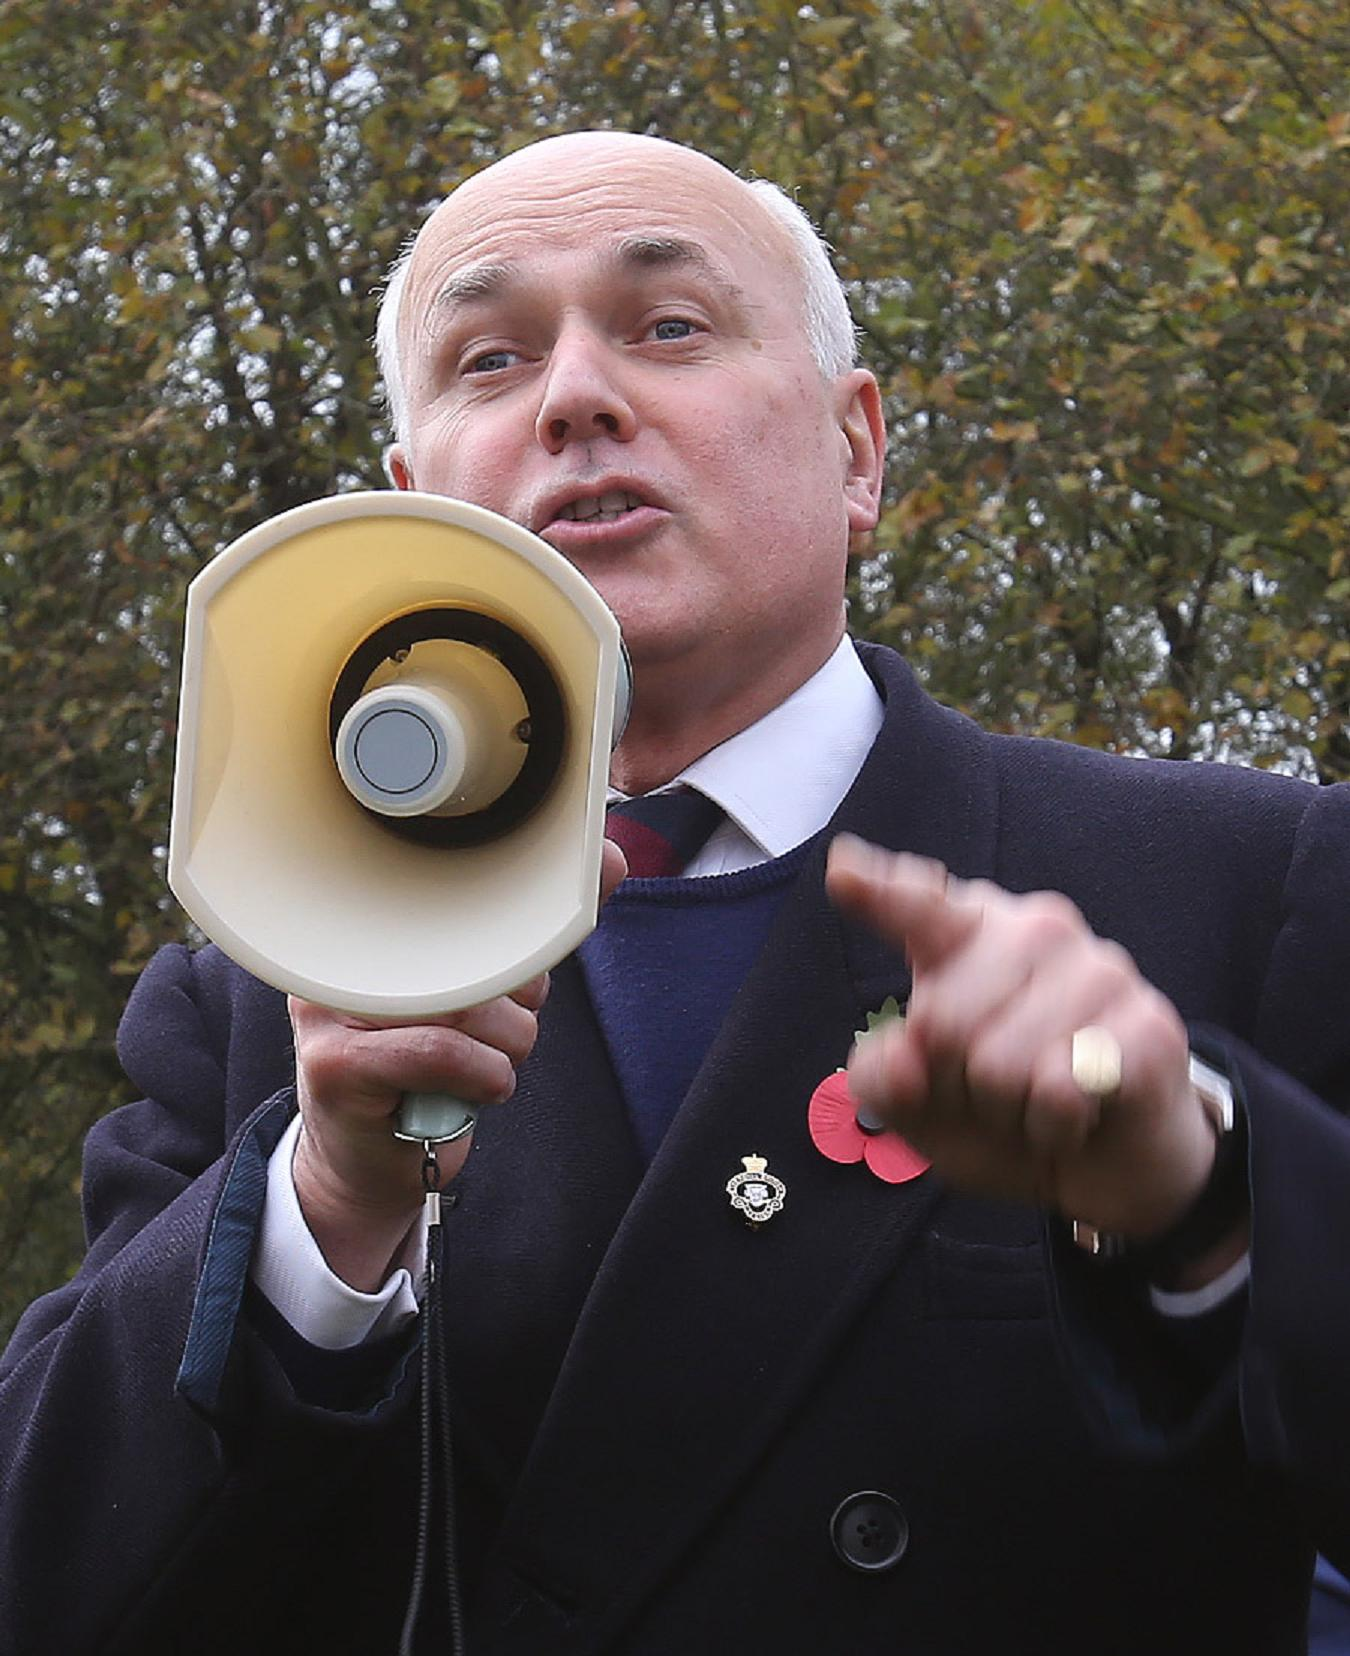 Iain Duncan Smith is spearheading government welfare reforms